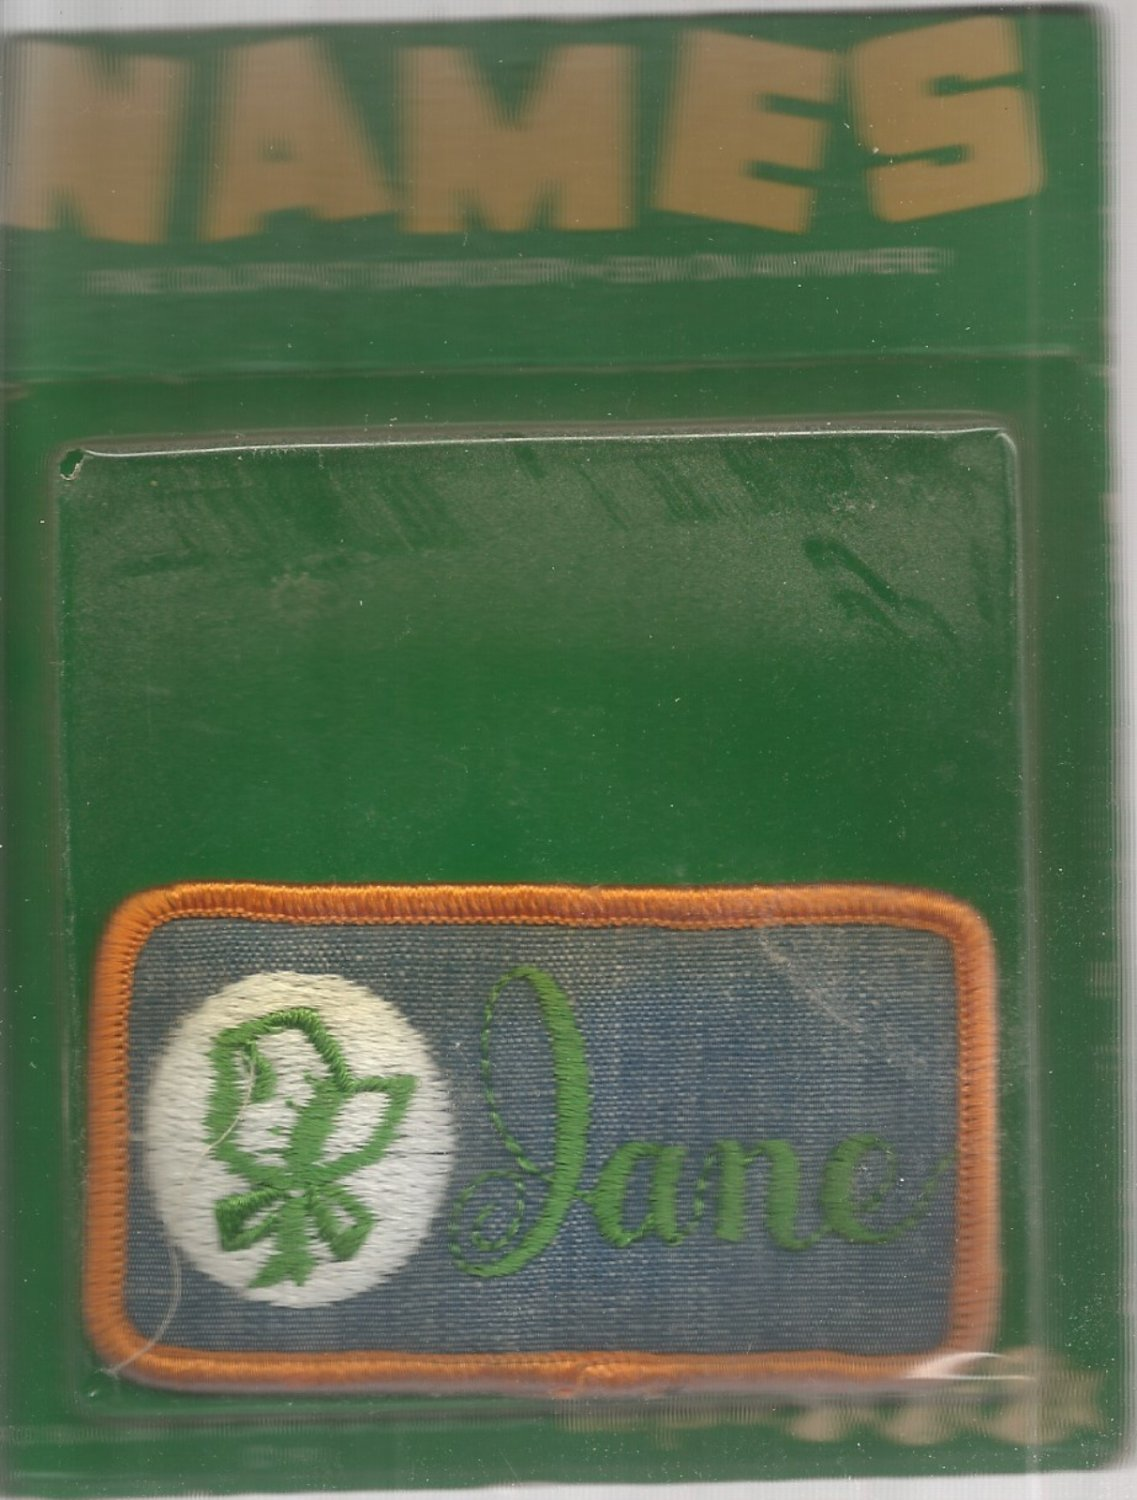 Name Embroidery sew on patch-  Jane- vintage 1973